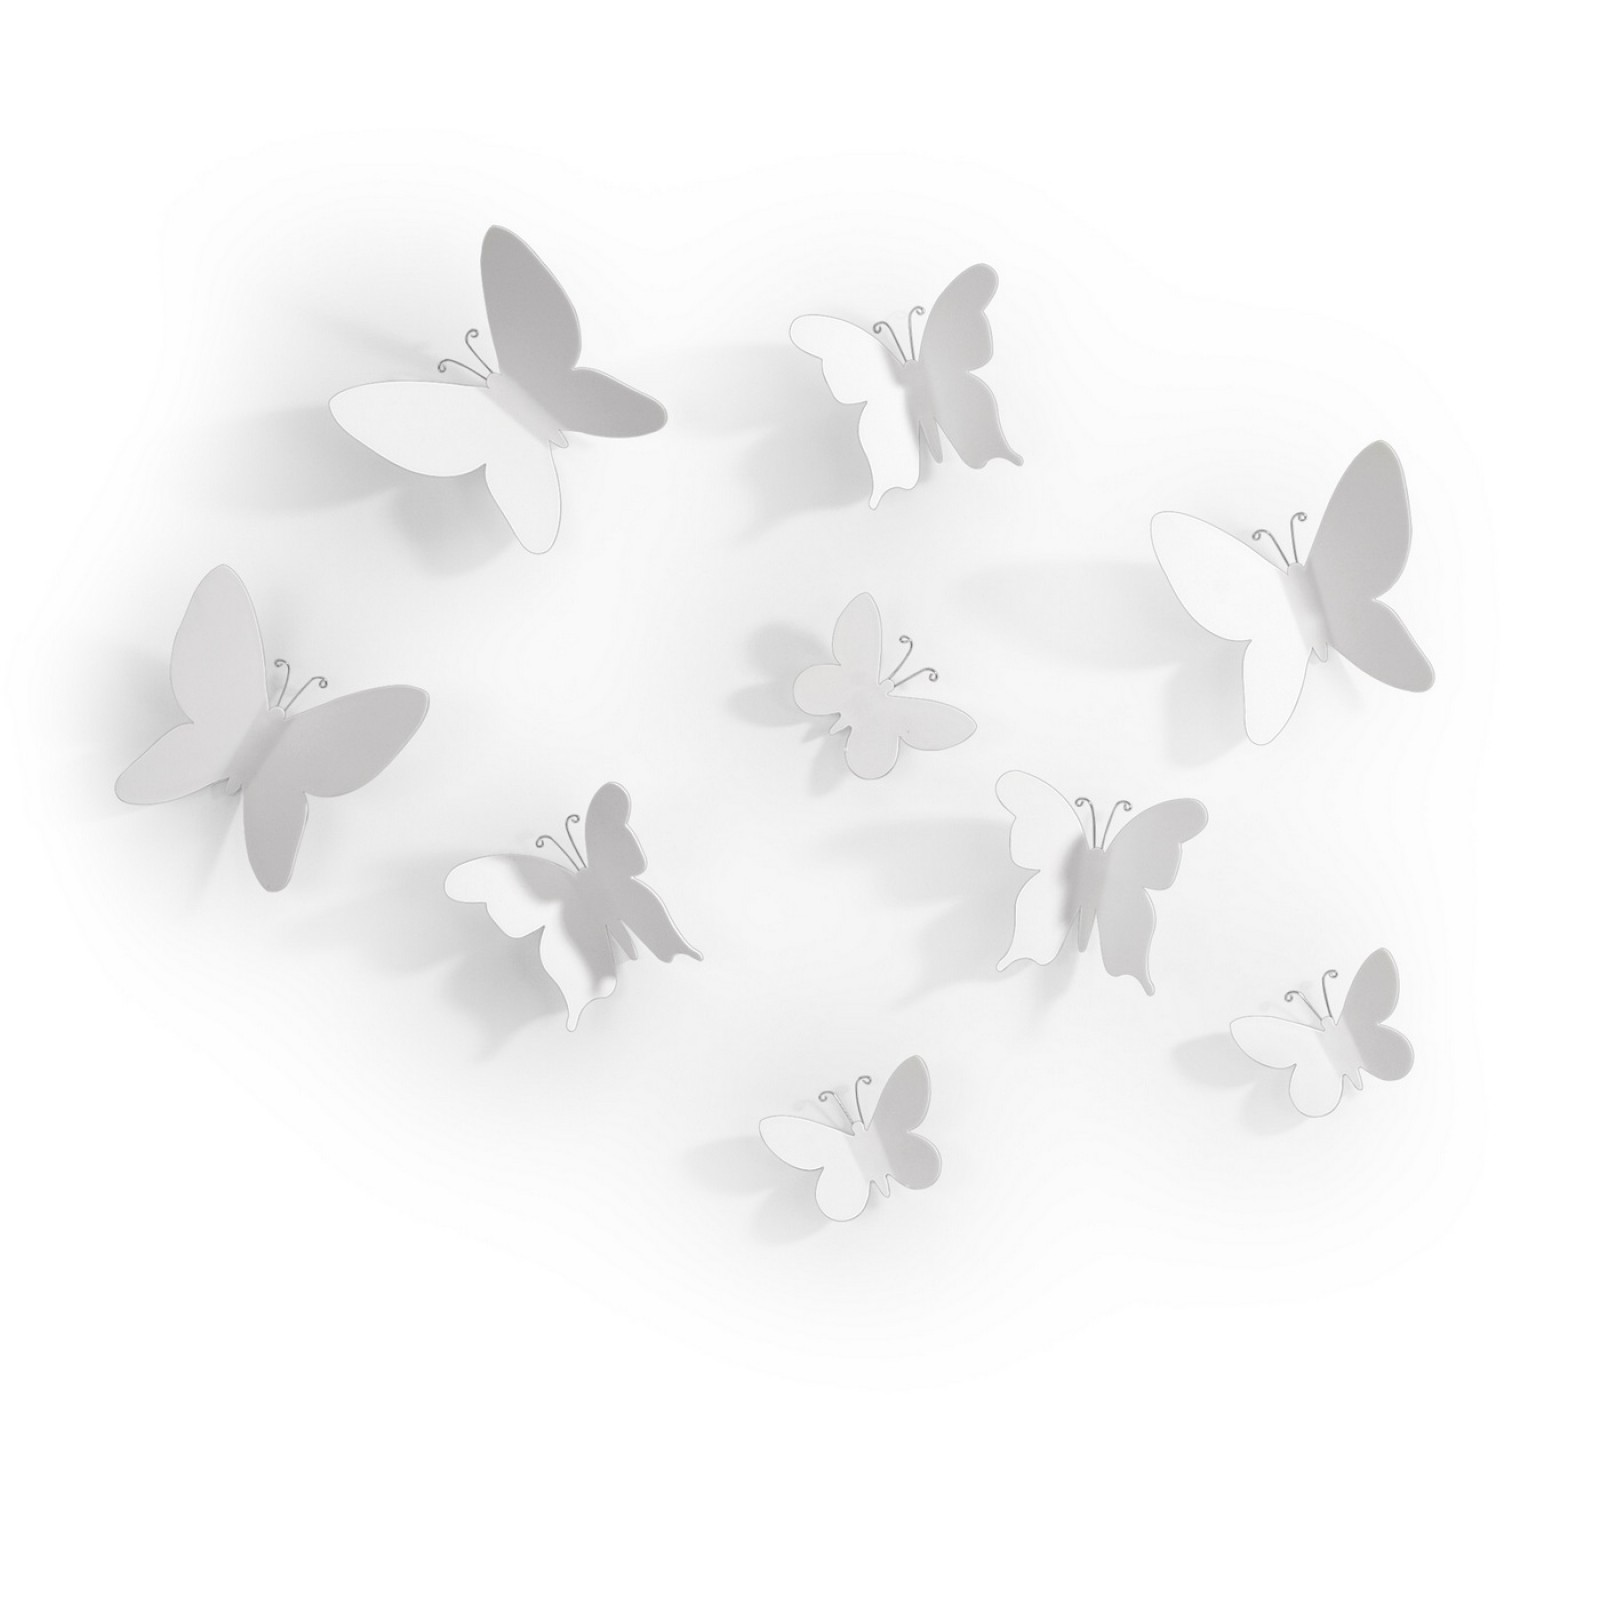 Mariposa Wall Decor (White) - Umbra